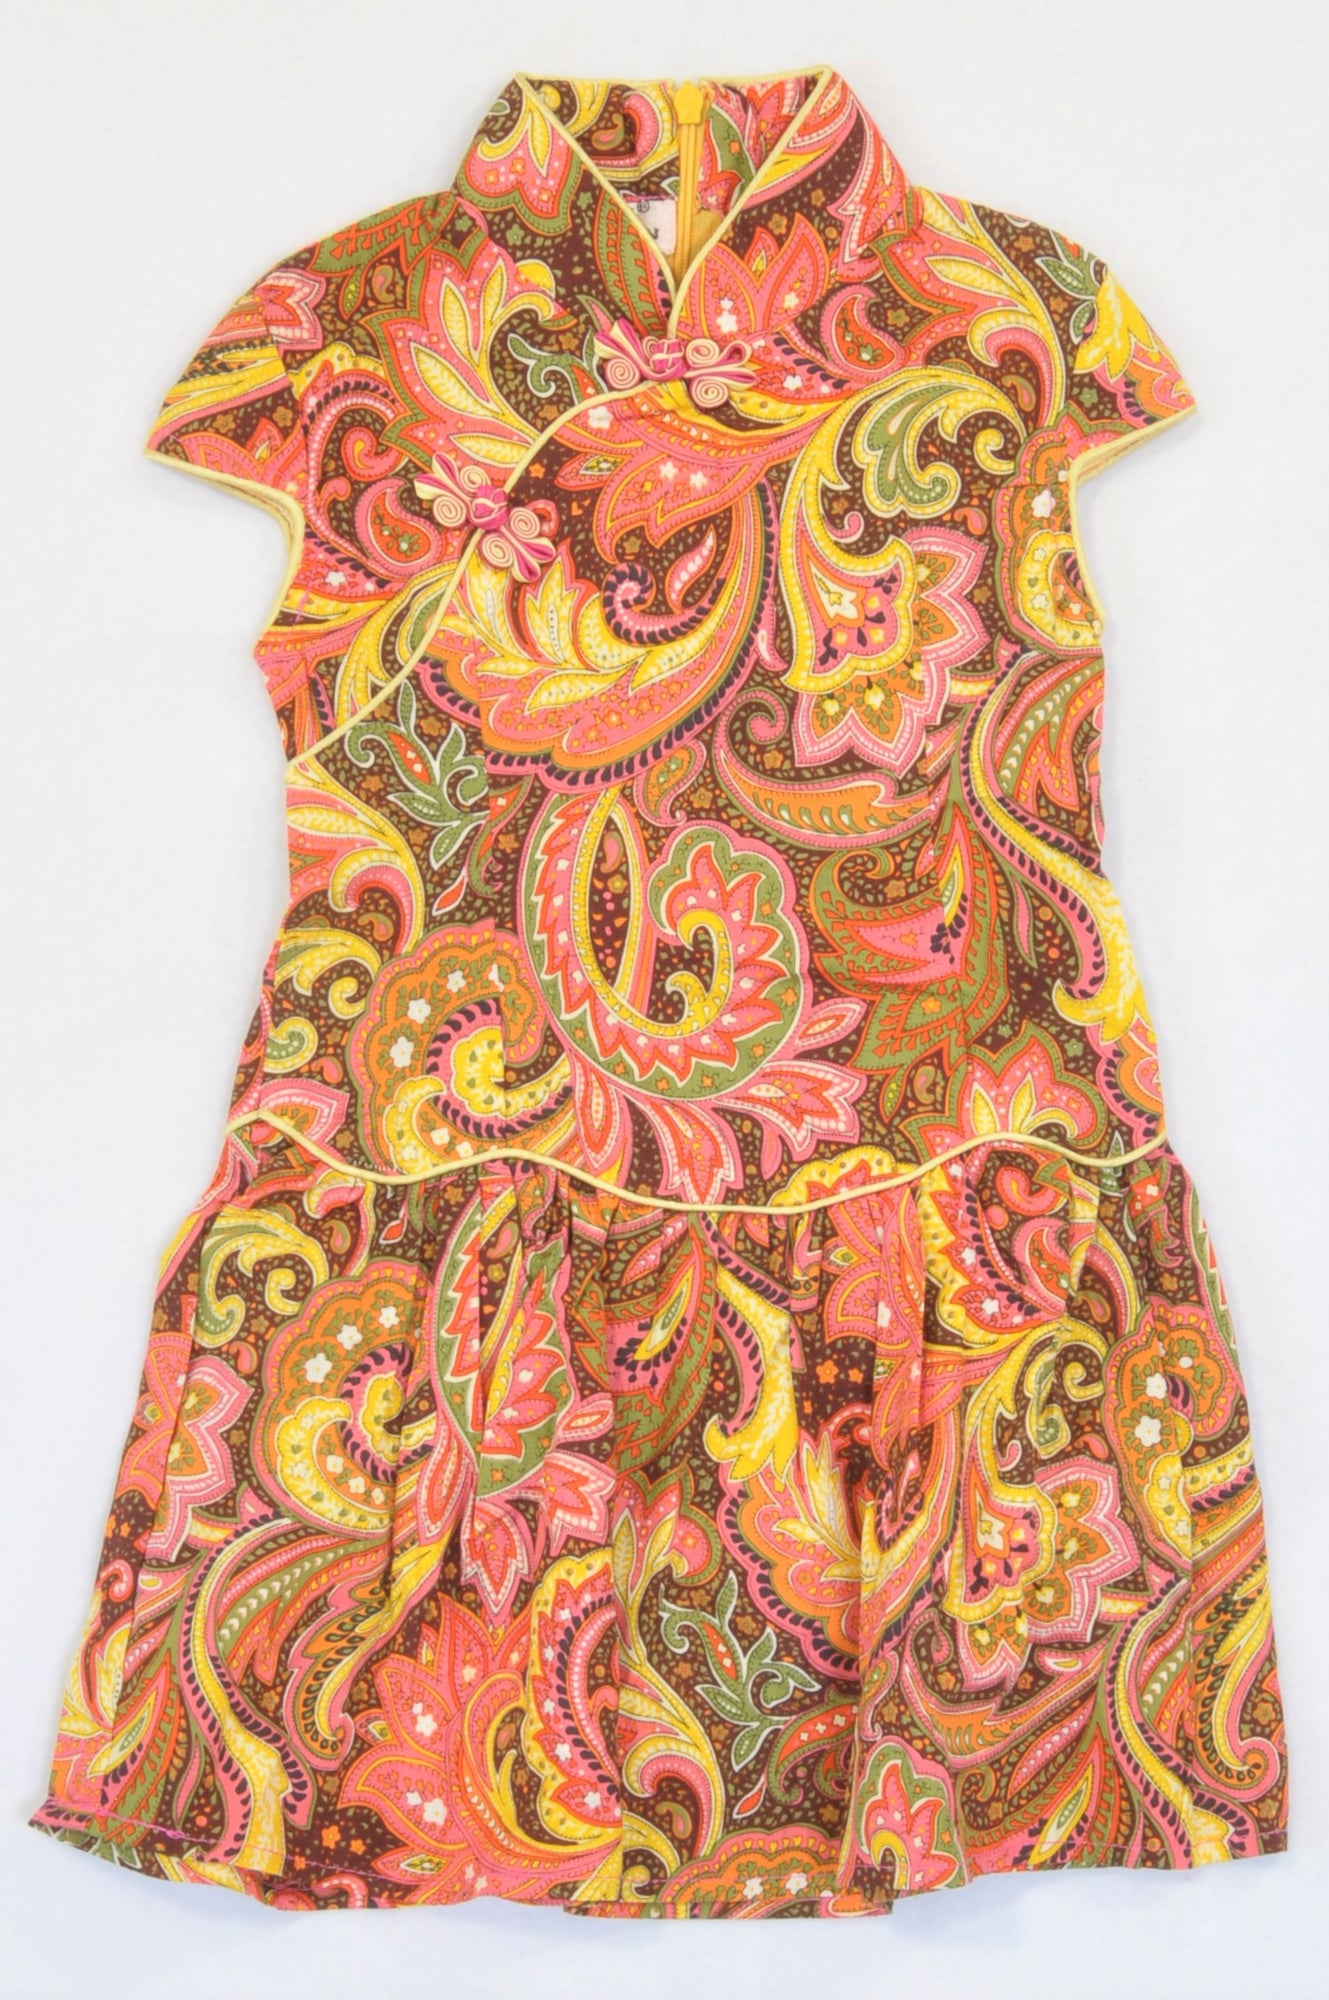 Xideni Pink & Orange Paisley Cap Sleeve Dress Girls 18-24 months